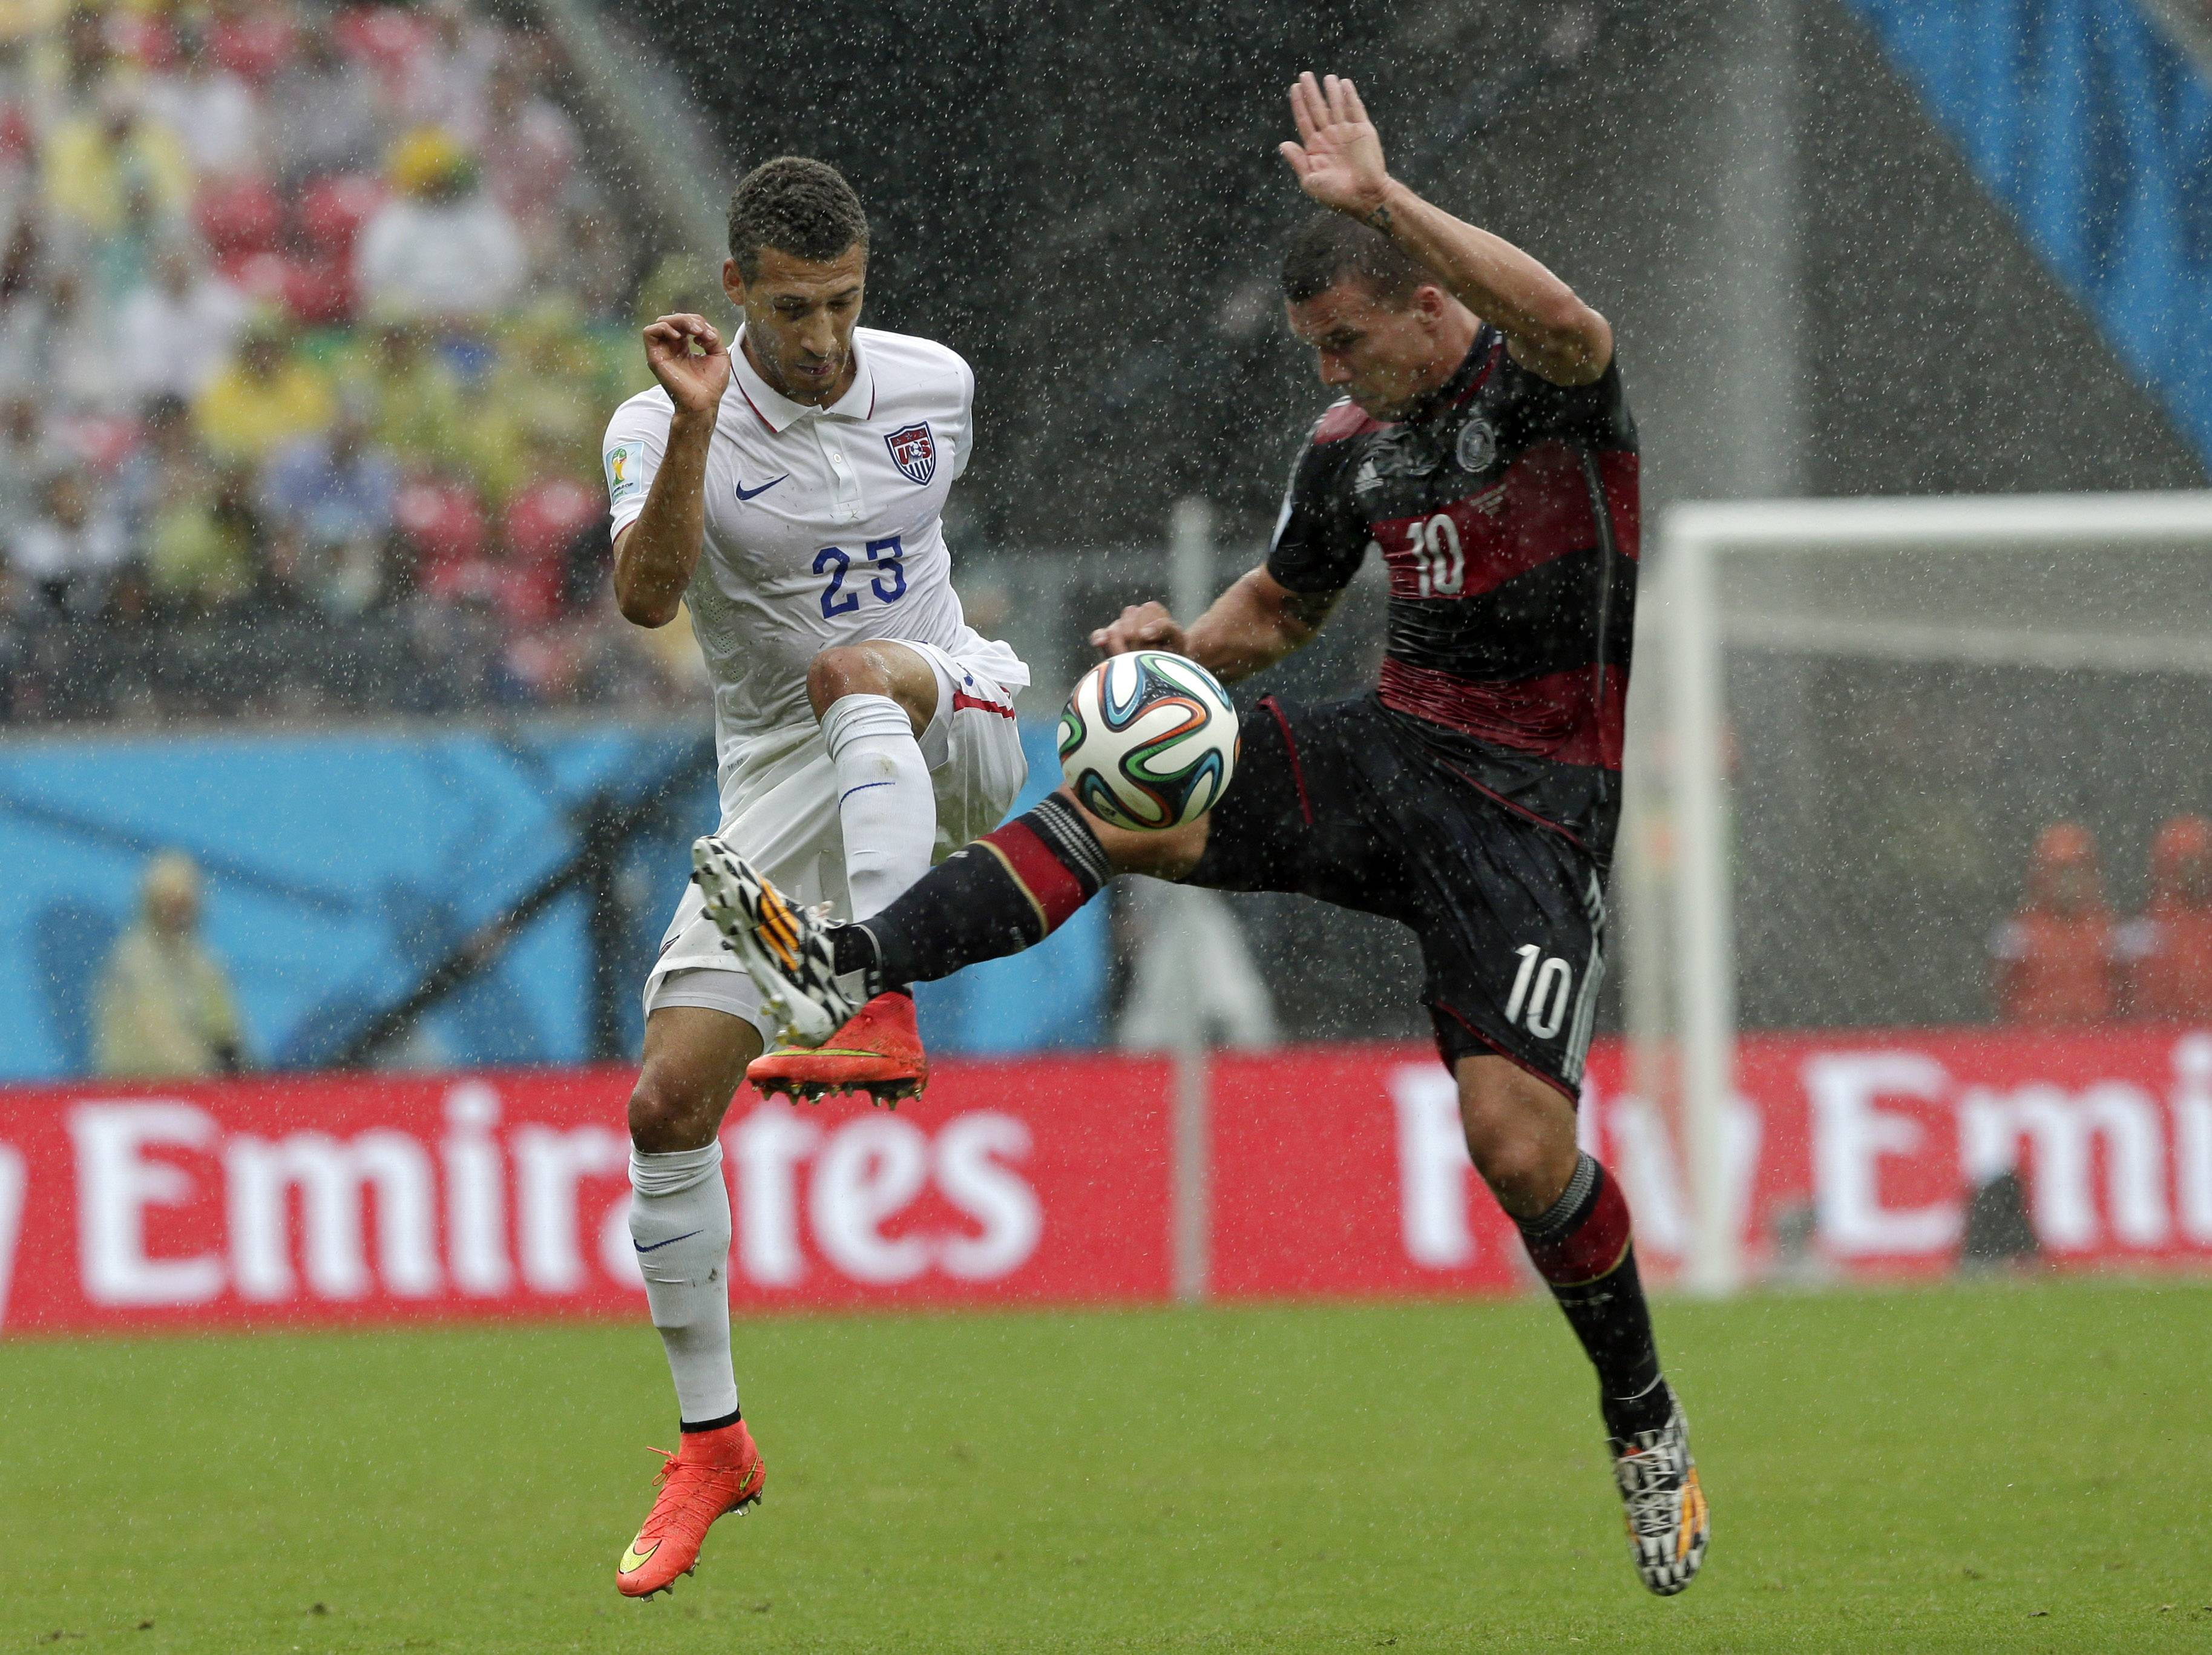 United States' Fabian Johnson, left, and Germany's Lukas Podolski challenge for the ball during the group G World Cup soccer match between the USA and Germany at the Arena Pernambuco in Recife, Brazil, Thursday, June 26, 2014.